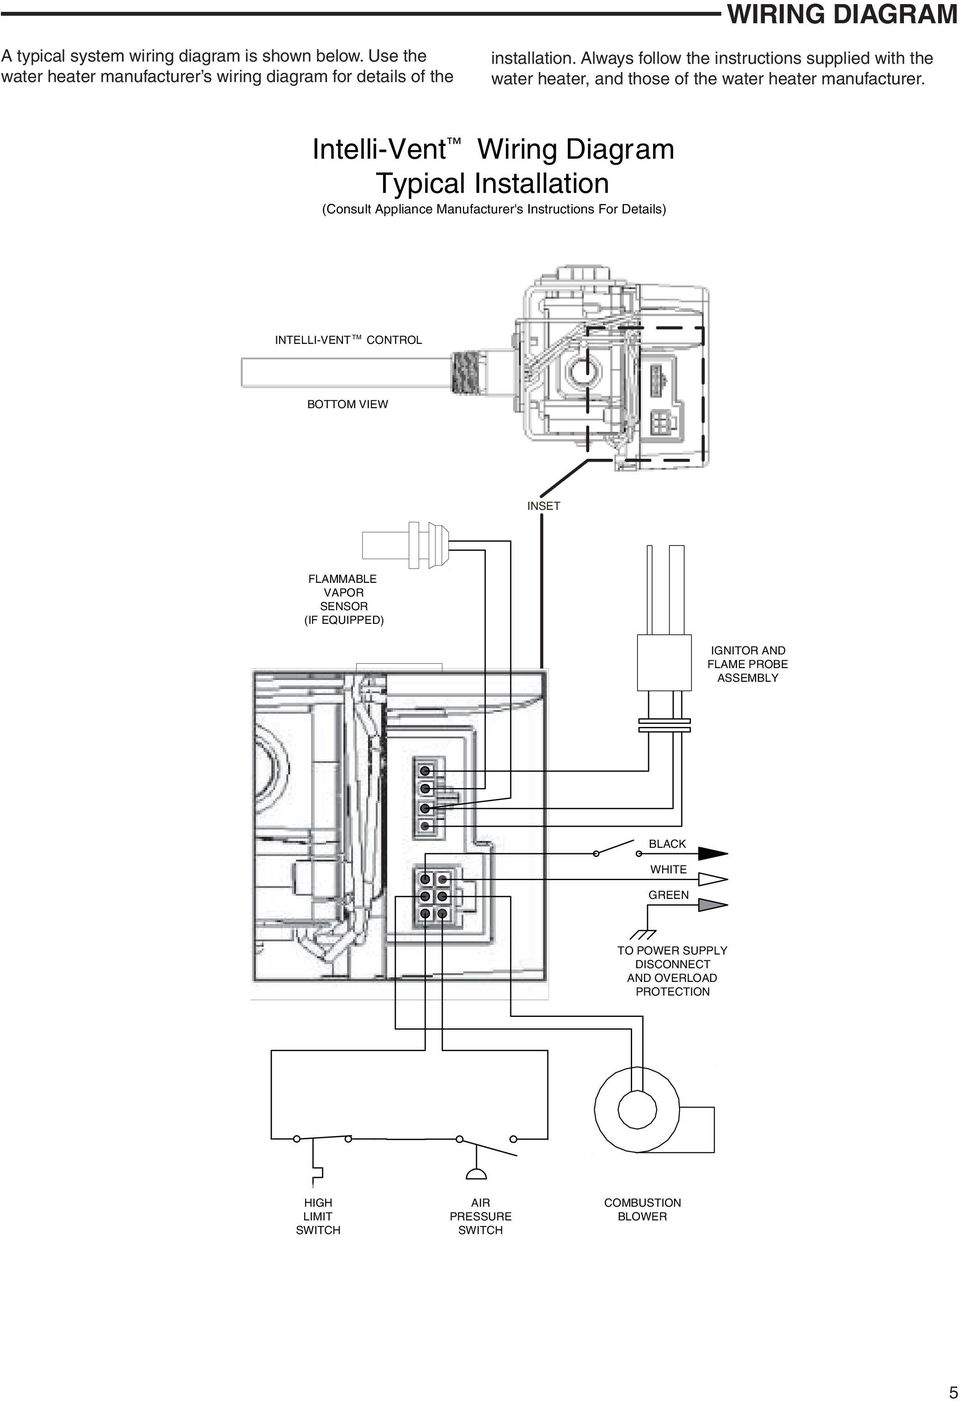 hight resolution of intelli vent wiring diagram typical installation consult appliance manufacturer s instructions for details intelli